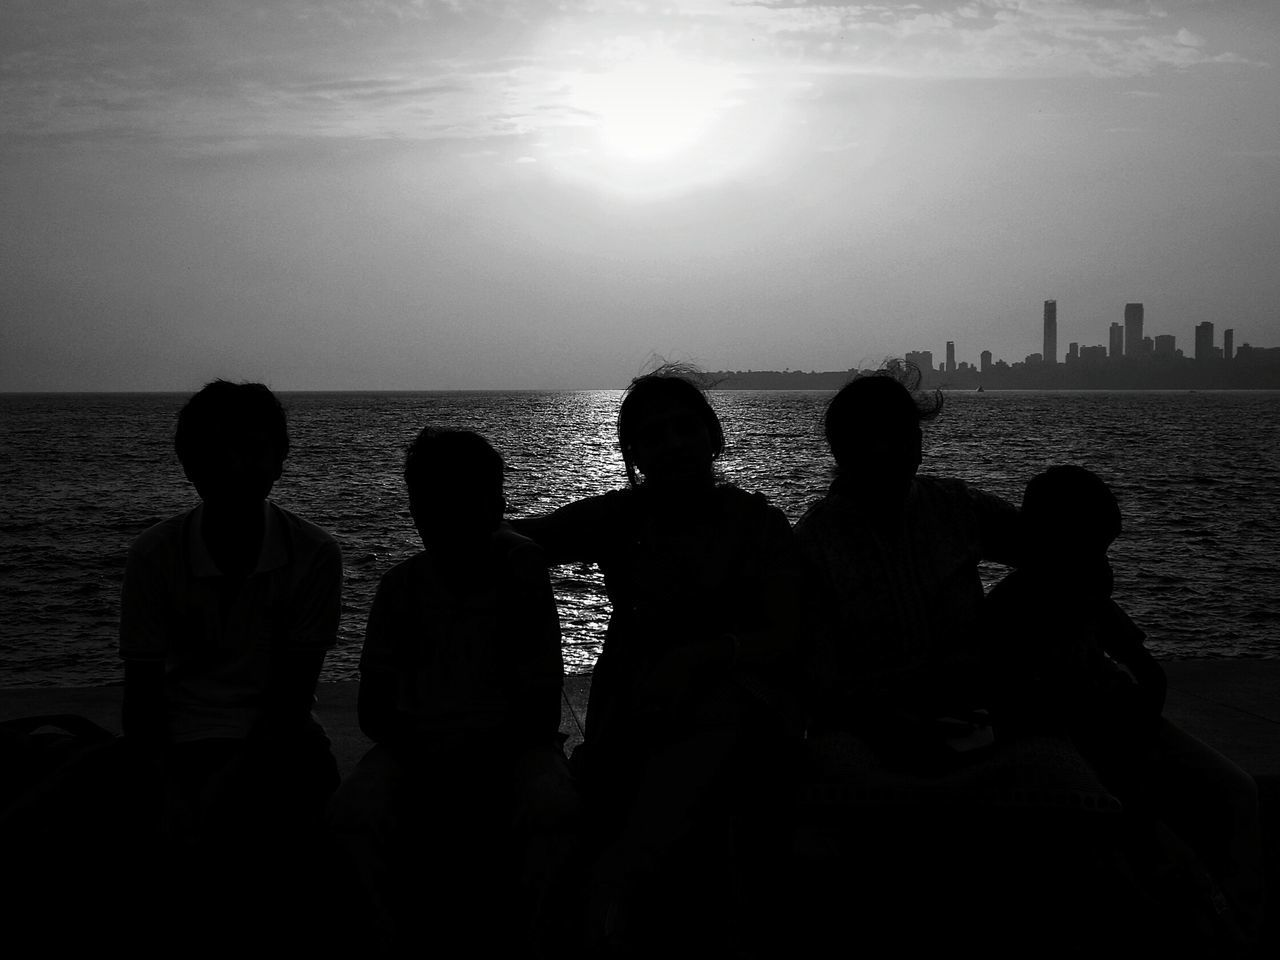 Silhouette Sea Sunlight Outdoors Horizon Over Water Togetherness Sky Sun Leisure Activity Real People Friendship Adult Adults Only People Water Nature Day Edited My Way Awesome Day Awesome_shots Scenics AWESOME!!